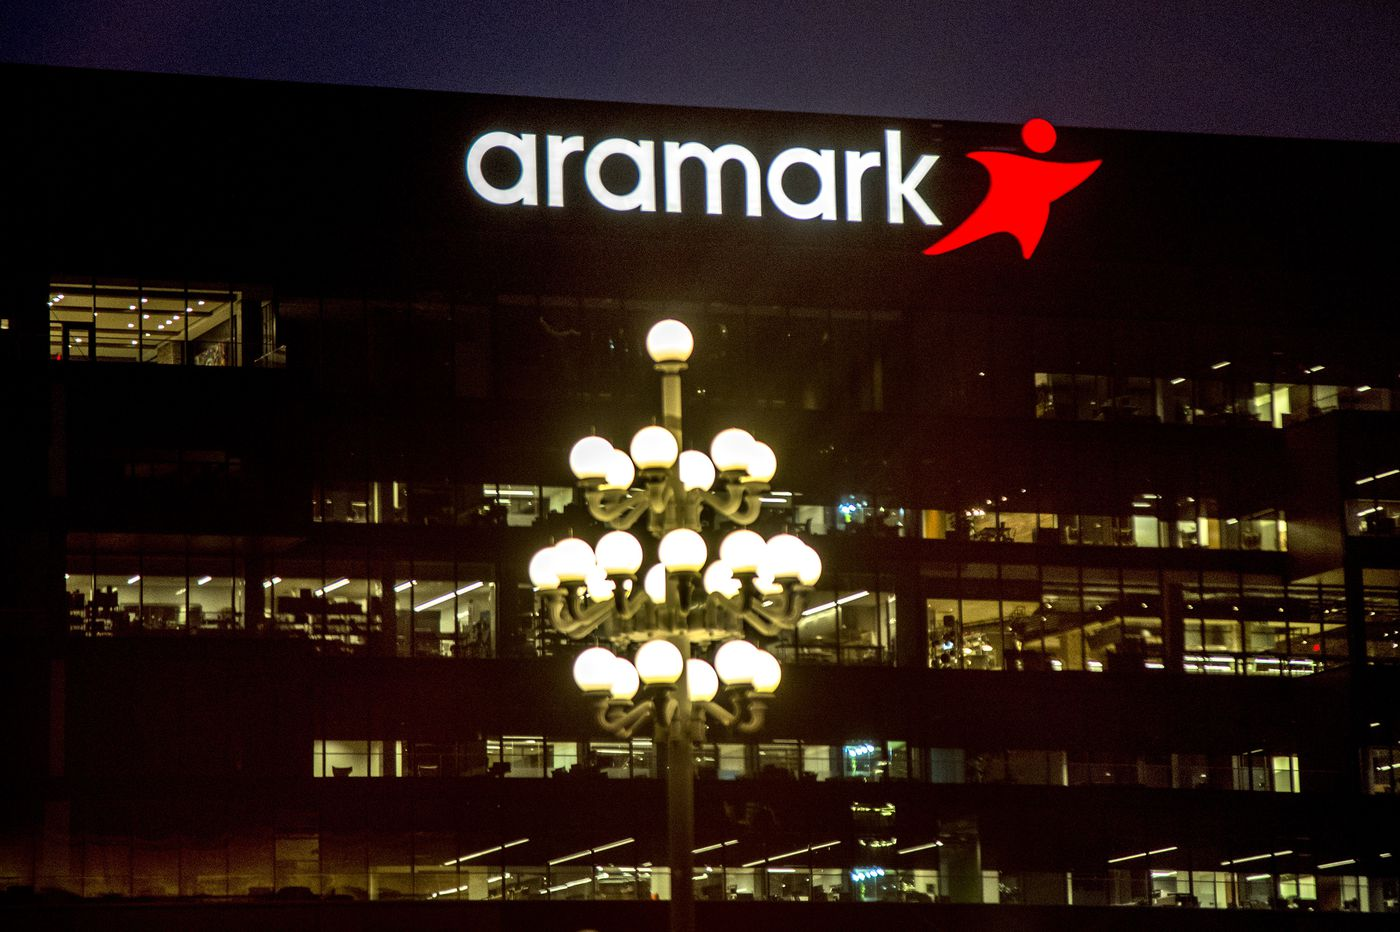 Aramark now has an activist investor holding a large stake